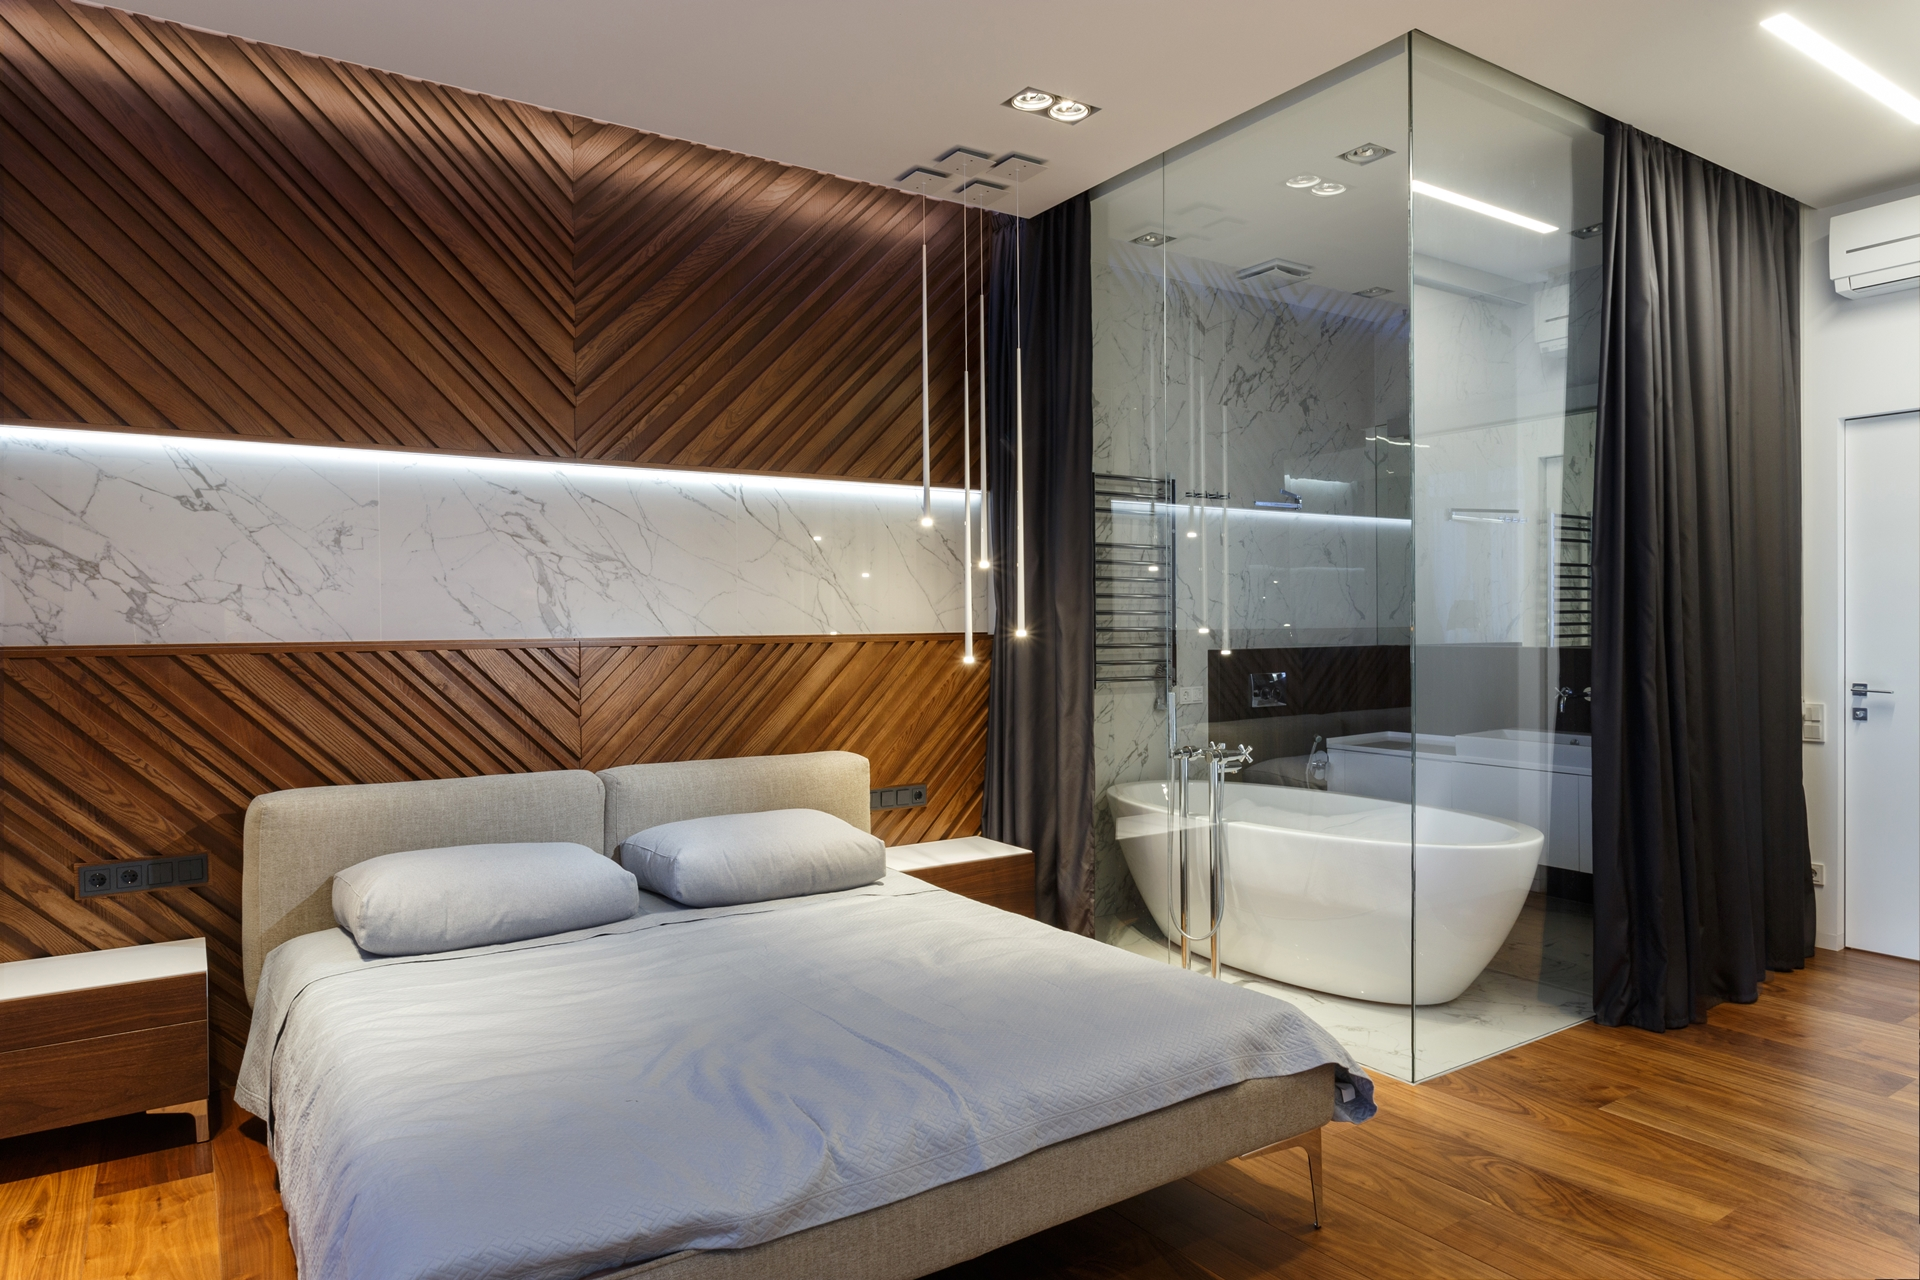 Glass Bathroom Walls In Modern Apartment By SVOYA  Architecture Beast